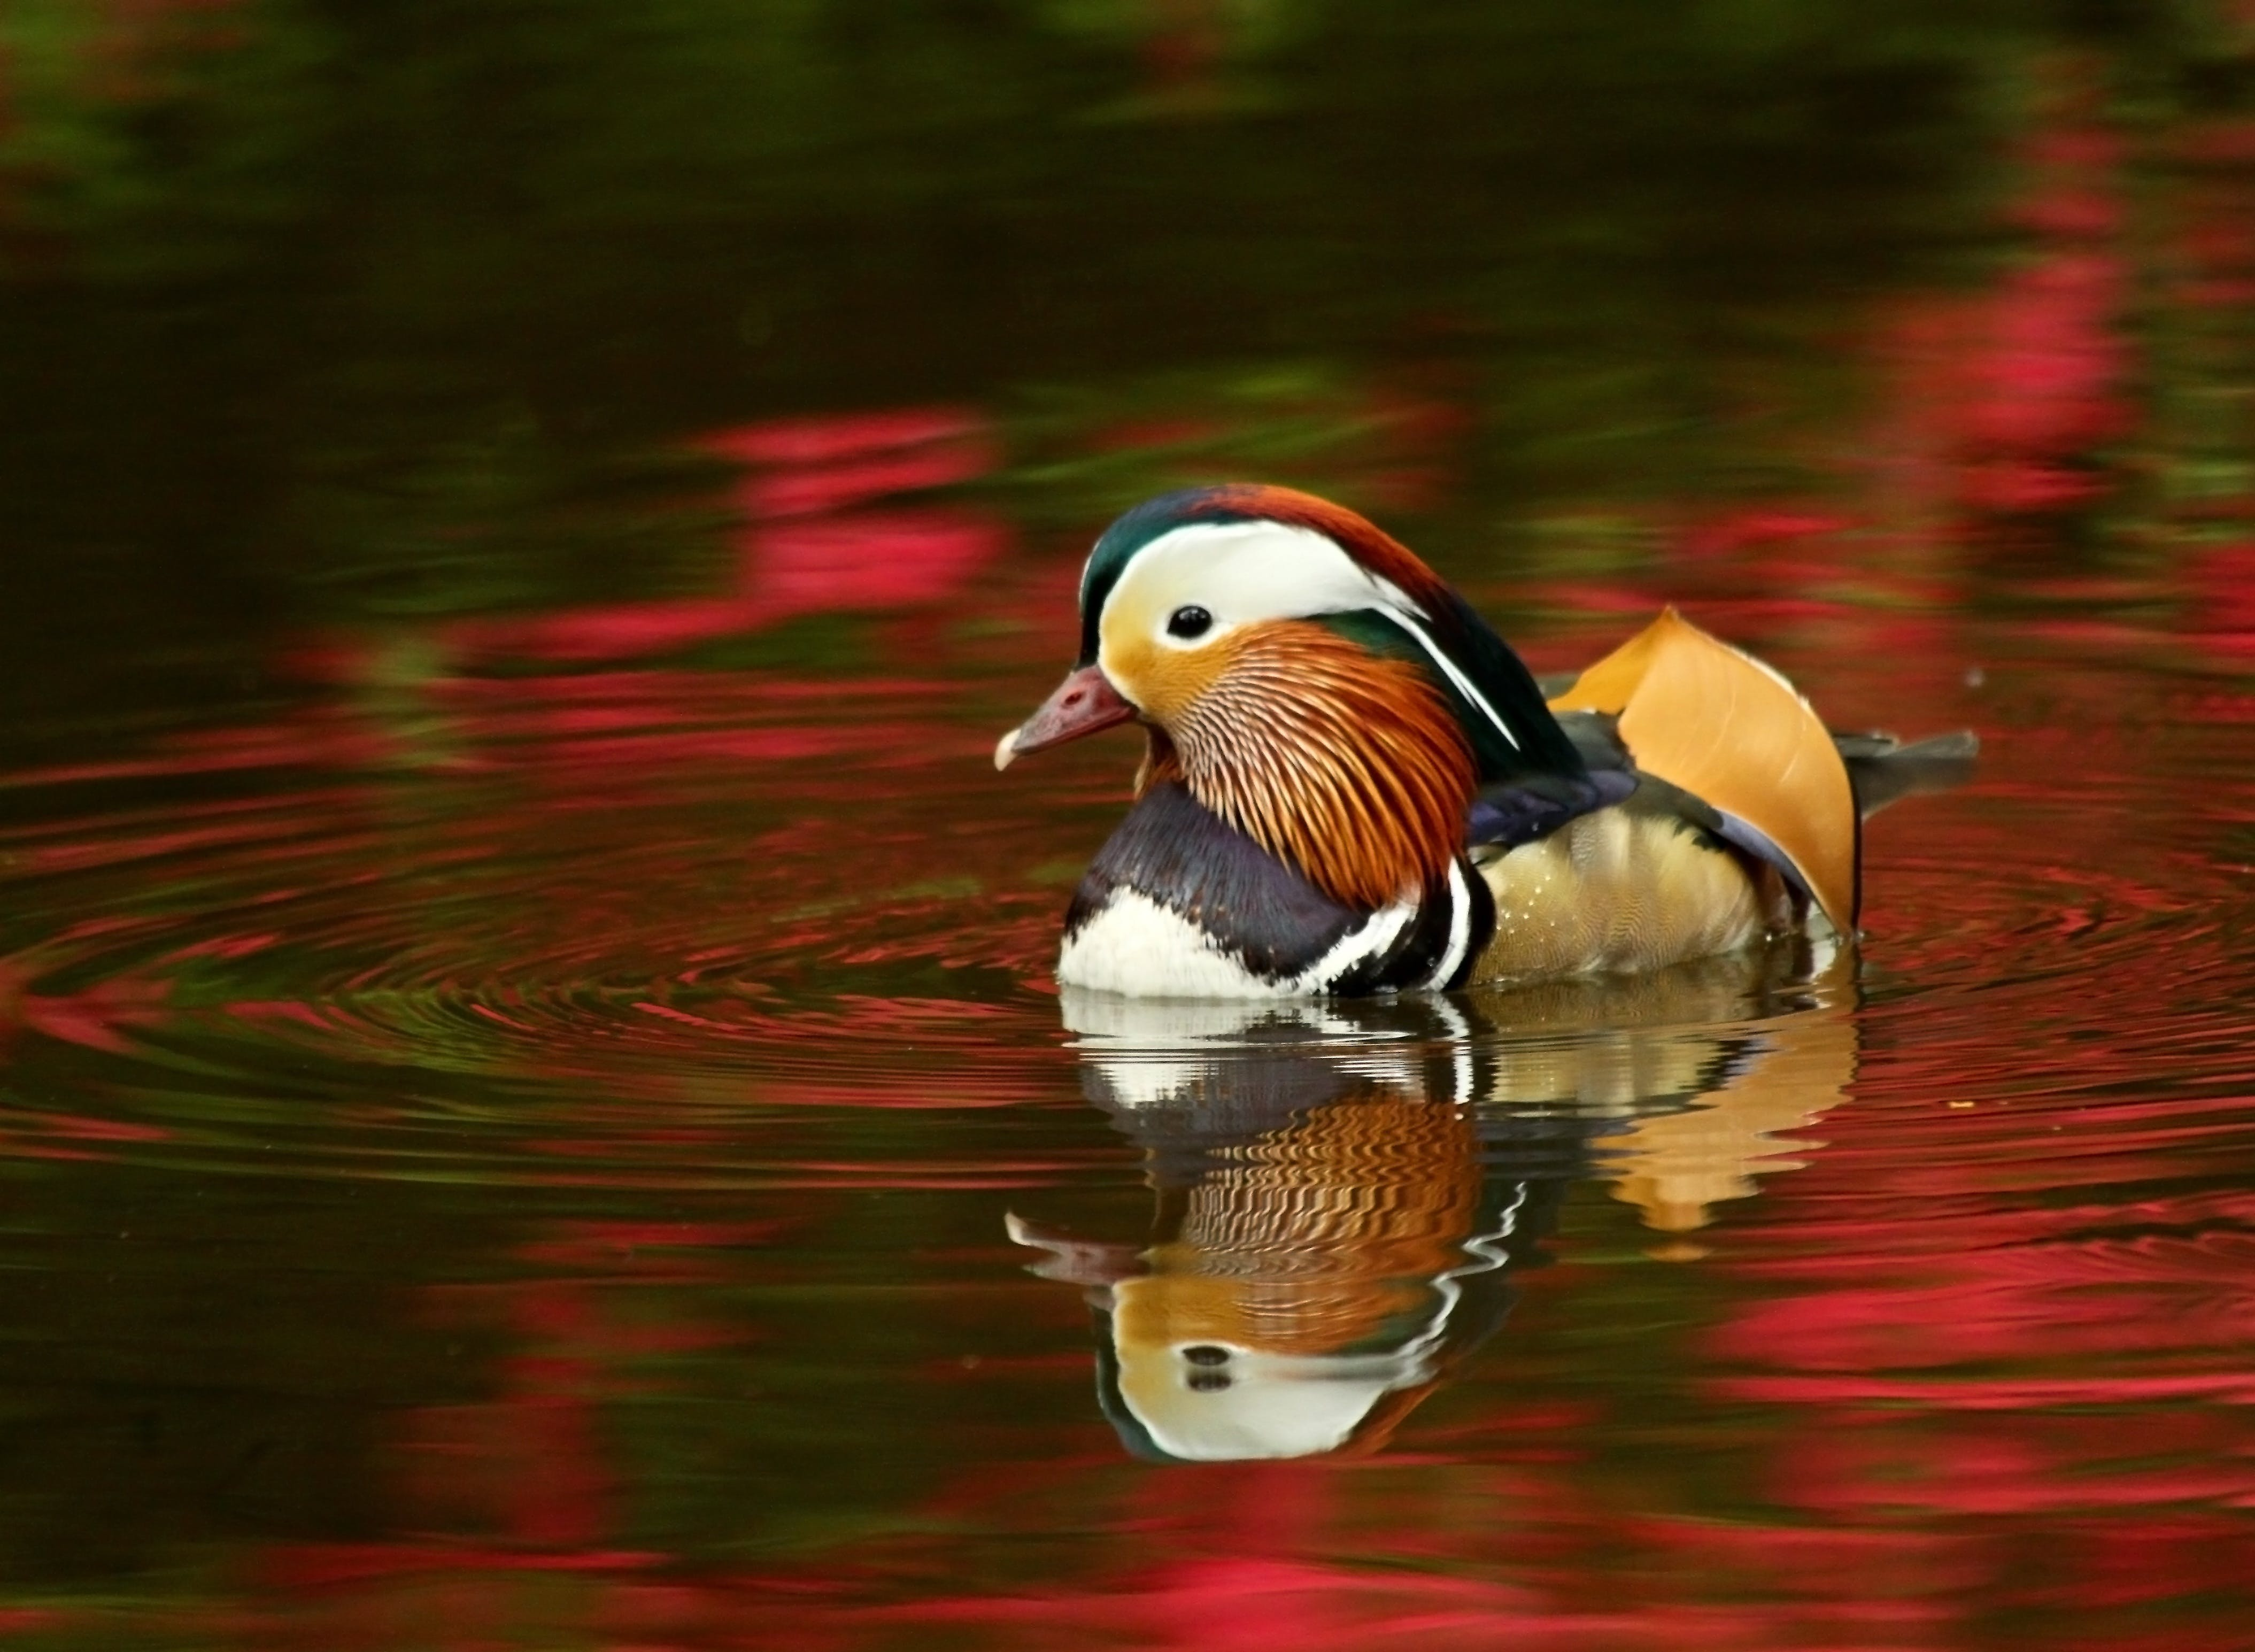 Beige Black Mandarin Duck on Red Waters during Daytime